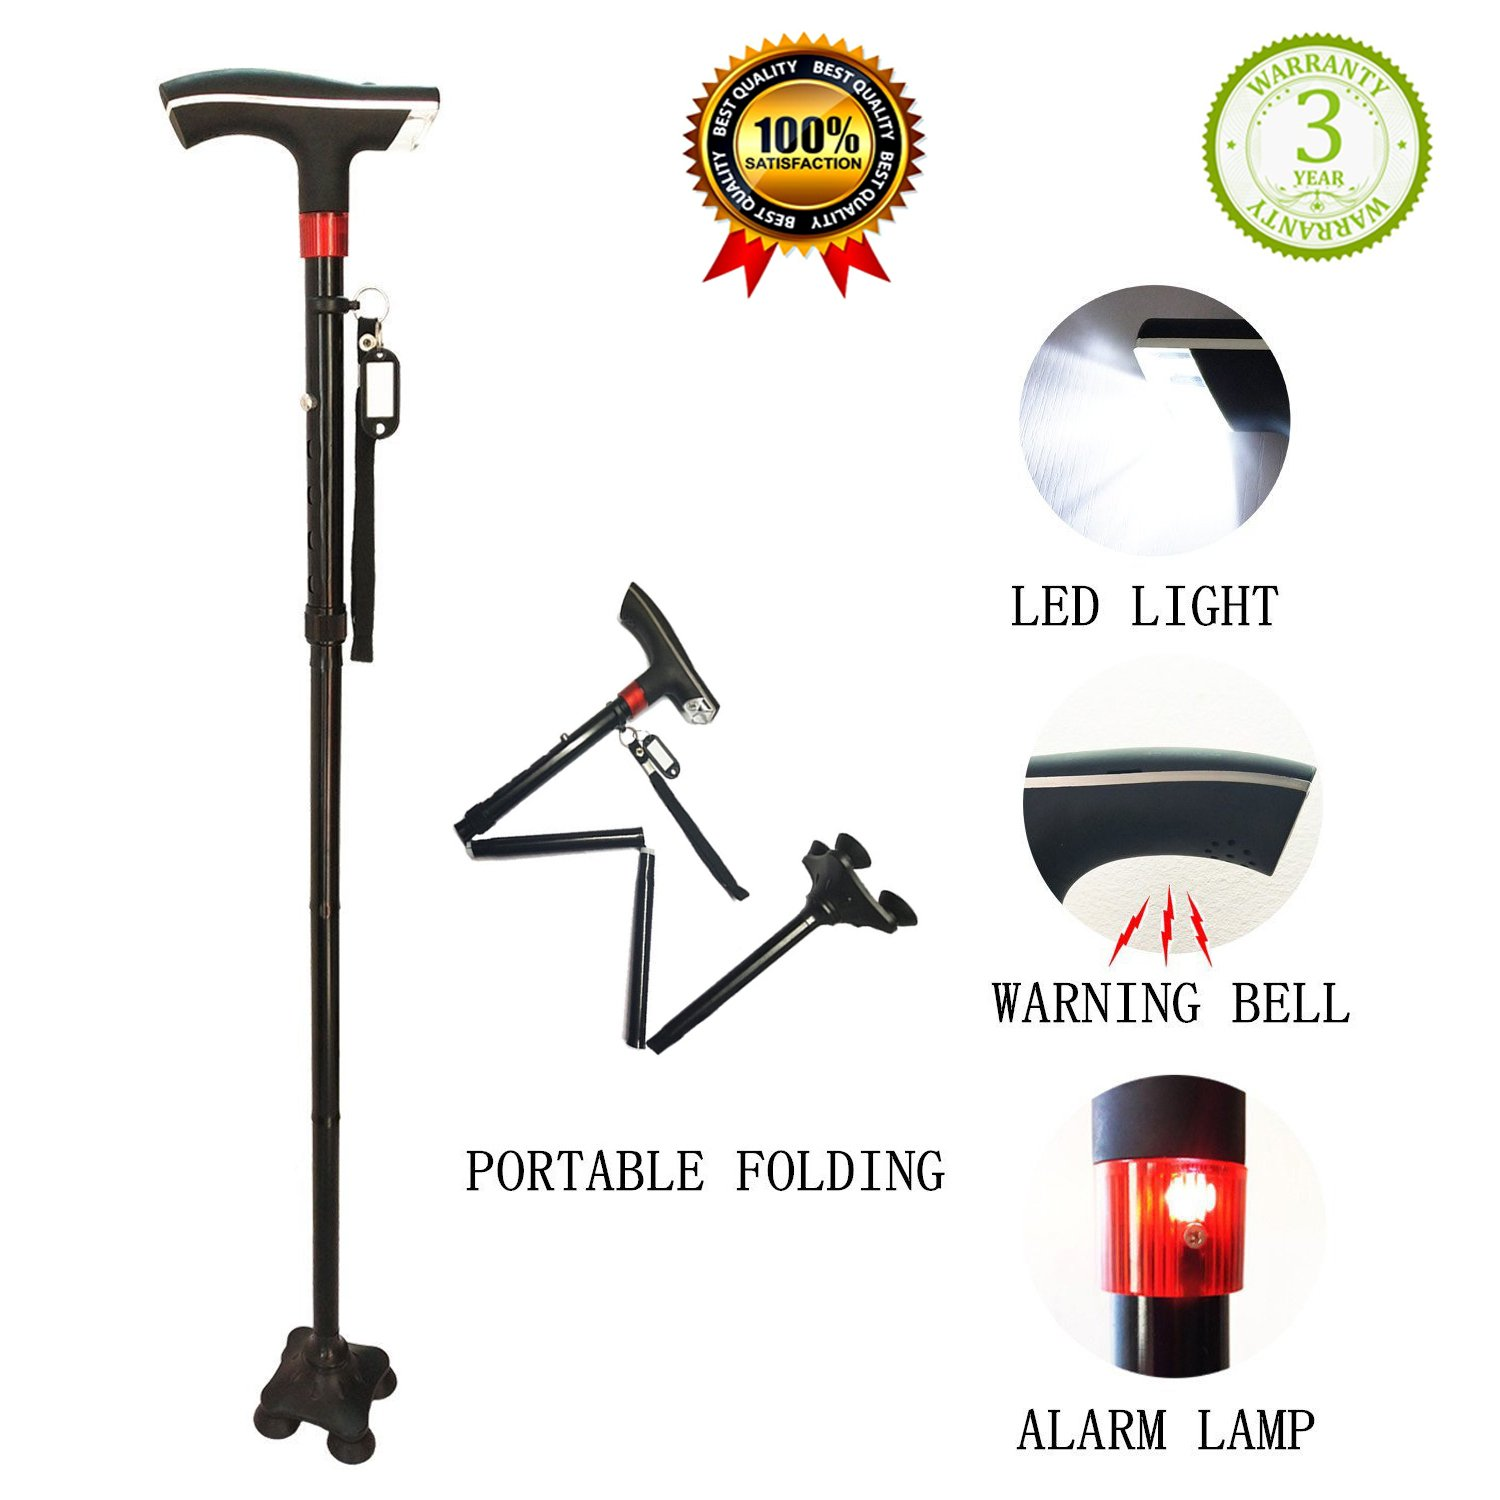 Walking Cane Survival Multitool Height Adjuatable Collapsible Folding Walking Canes Stick Mobility Aids with Replacable Tip LED Light SOS Alarm Name Plate Carrying Bag Packaging for Men Women Black